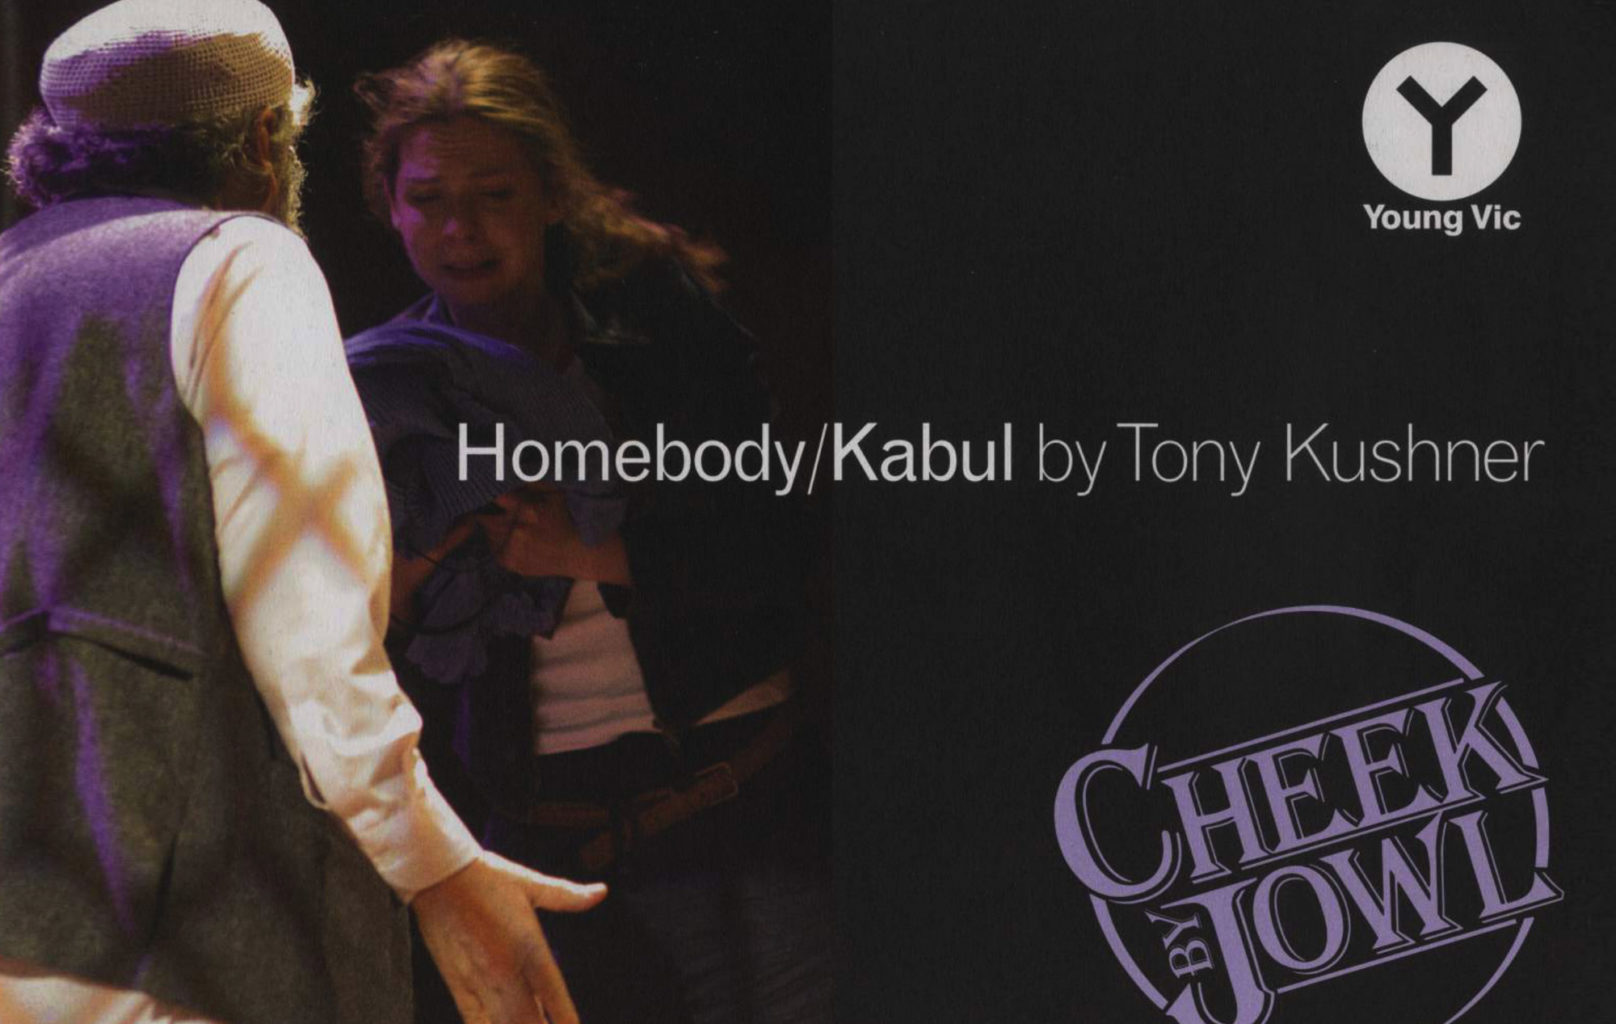 Programme for Cheek by Jowl's production of Homebody/Kabul